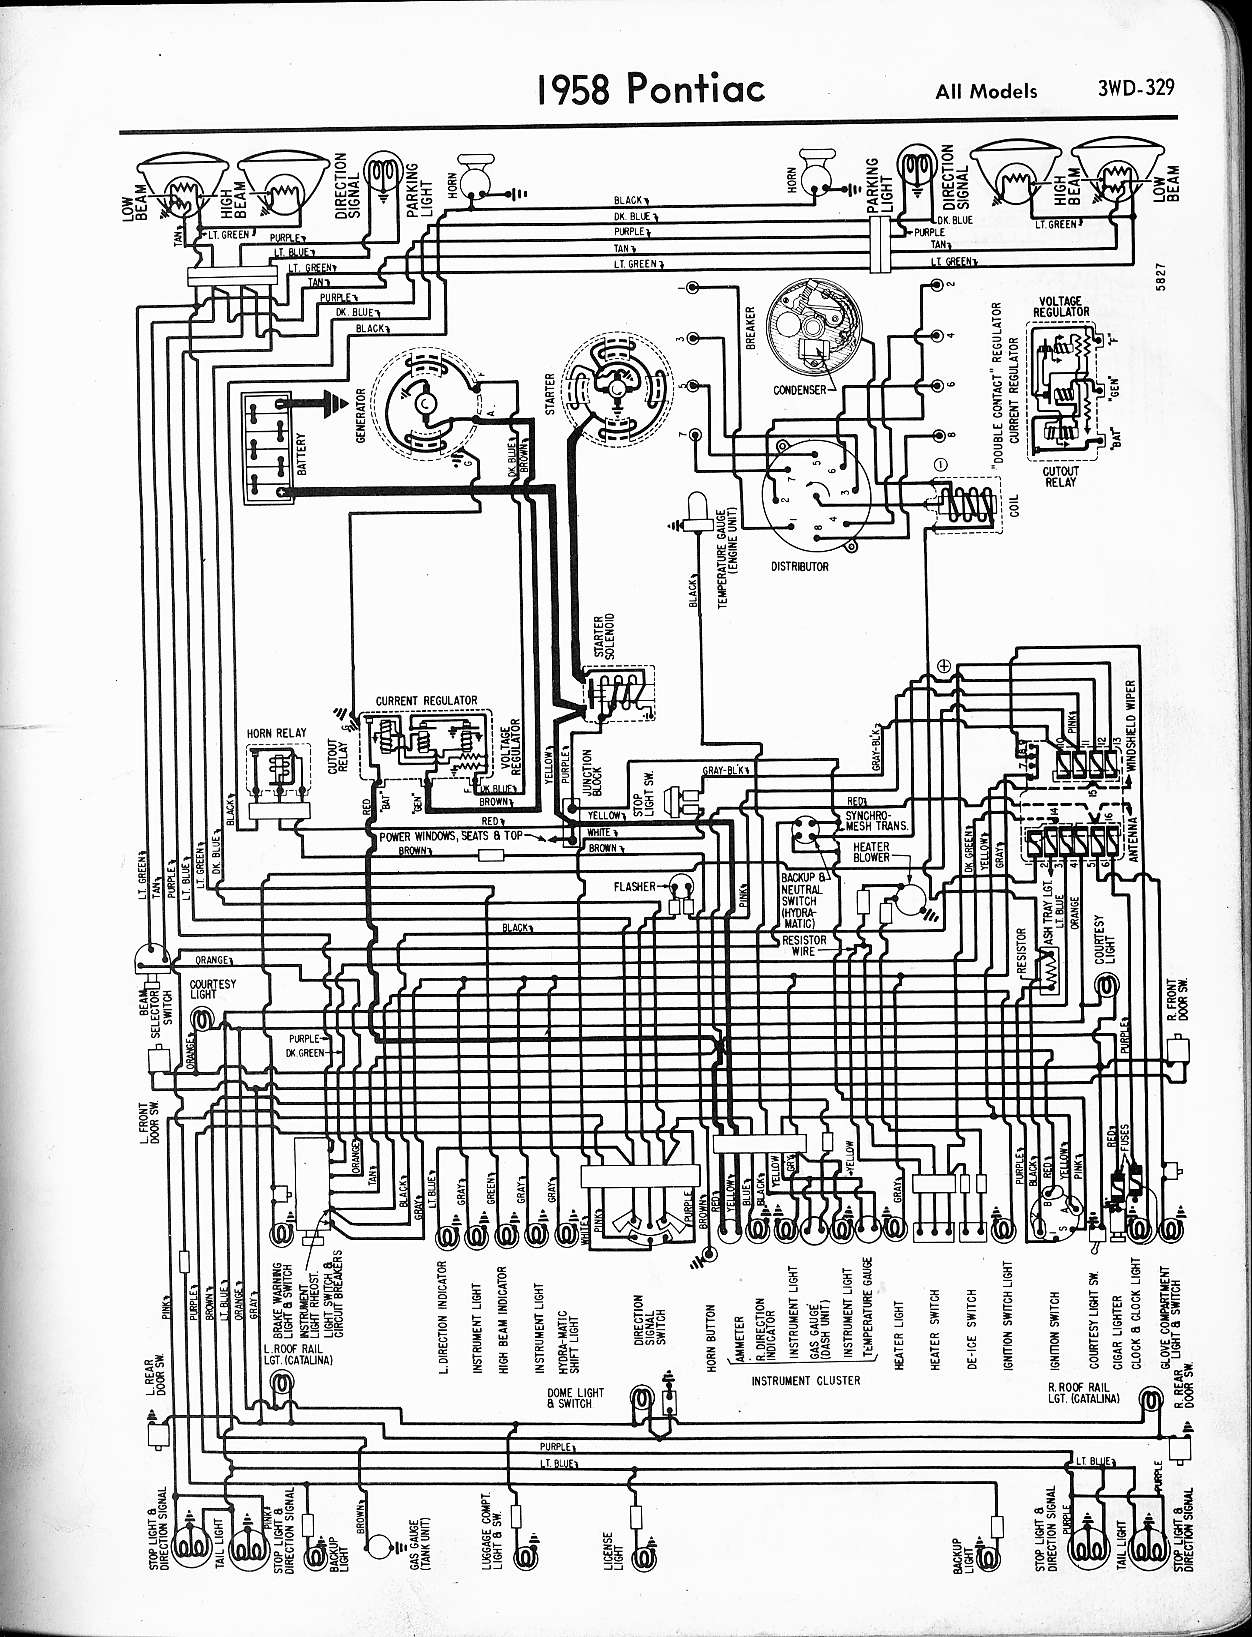 wallace racing wiring diagrams rh wallaceracing com 2009 Pontiac G6 Wiring-Diagram Pontiac Radio Wiring Diagram